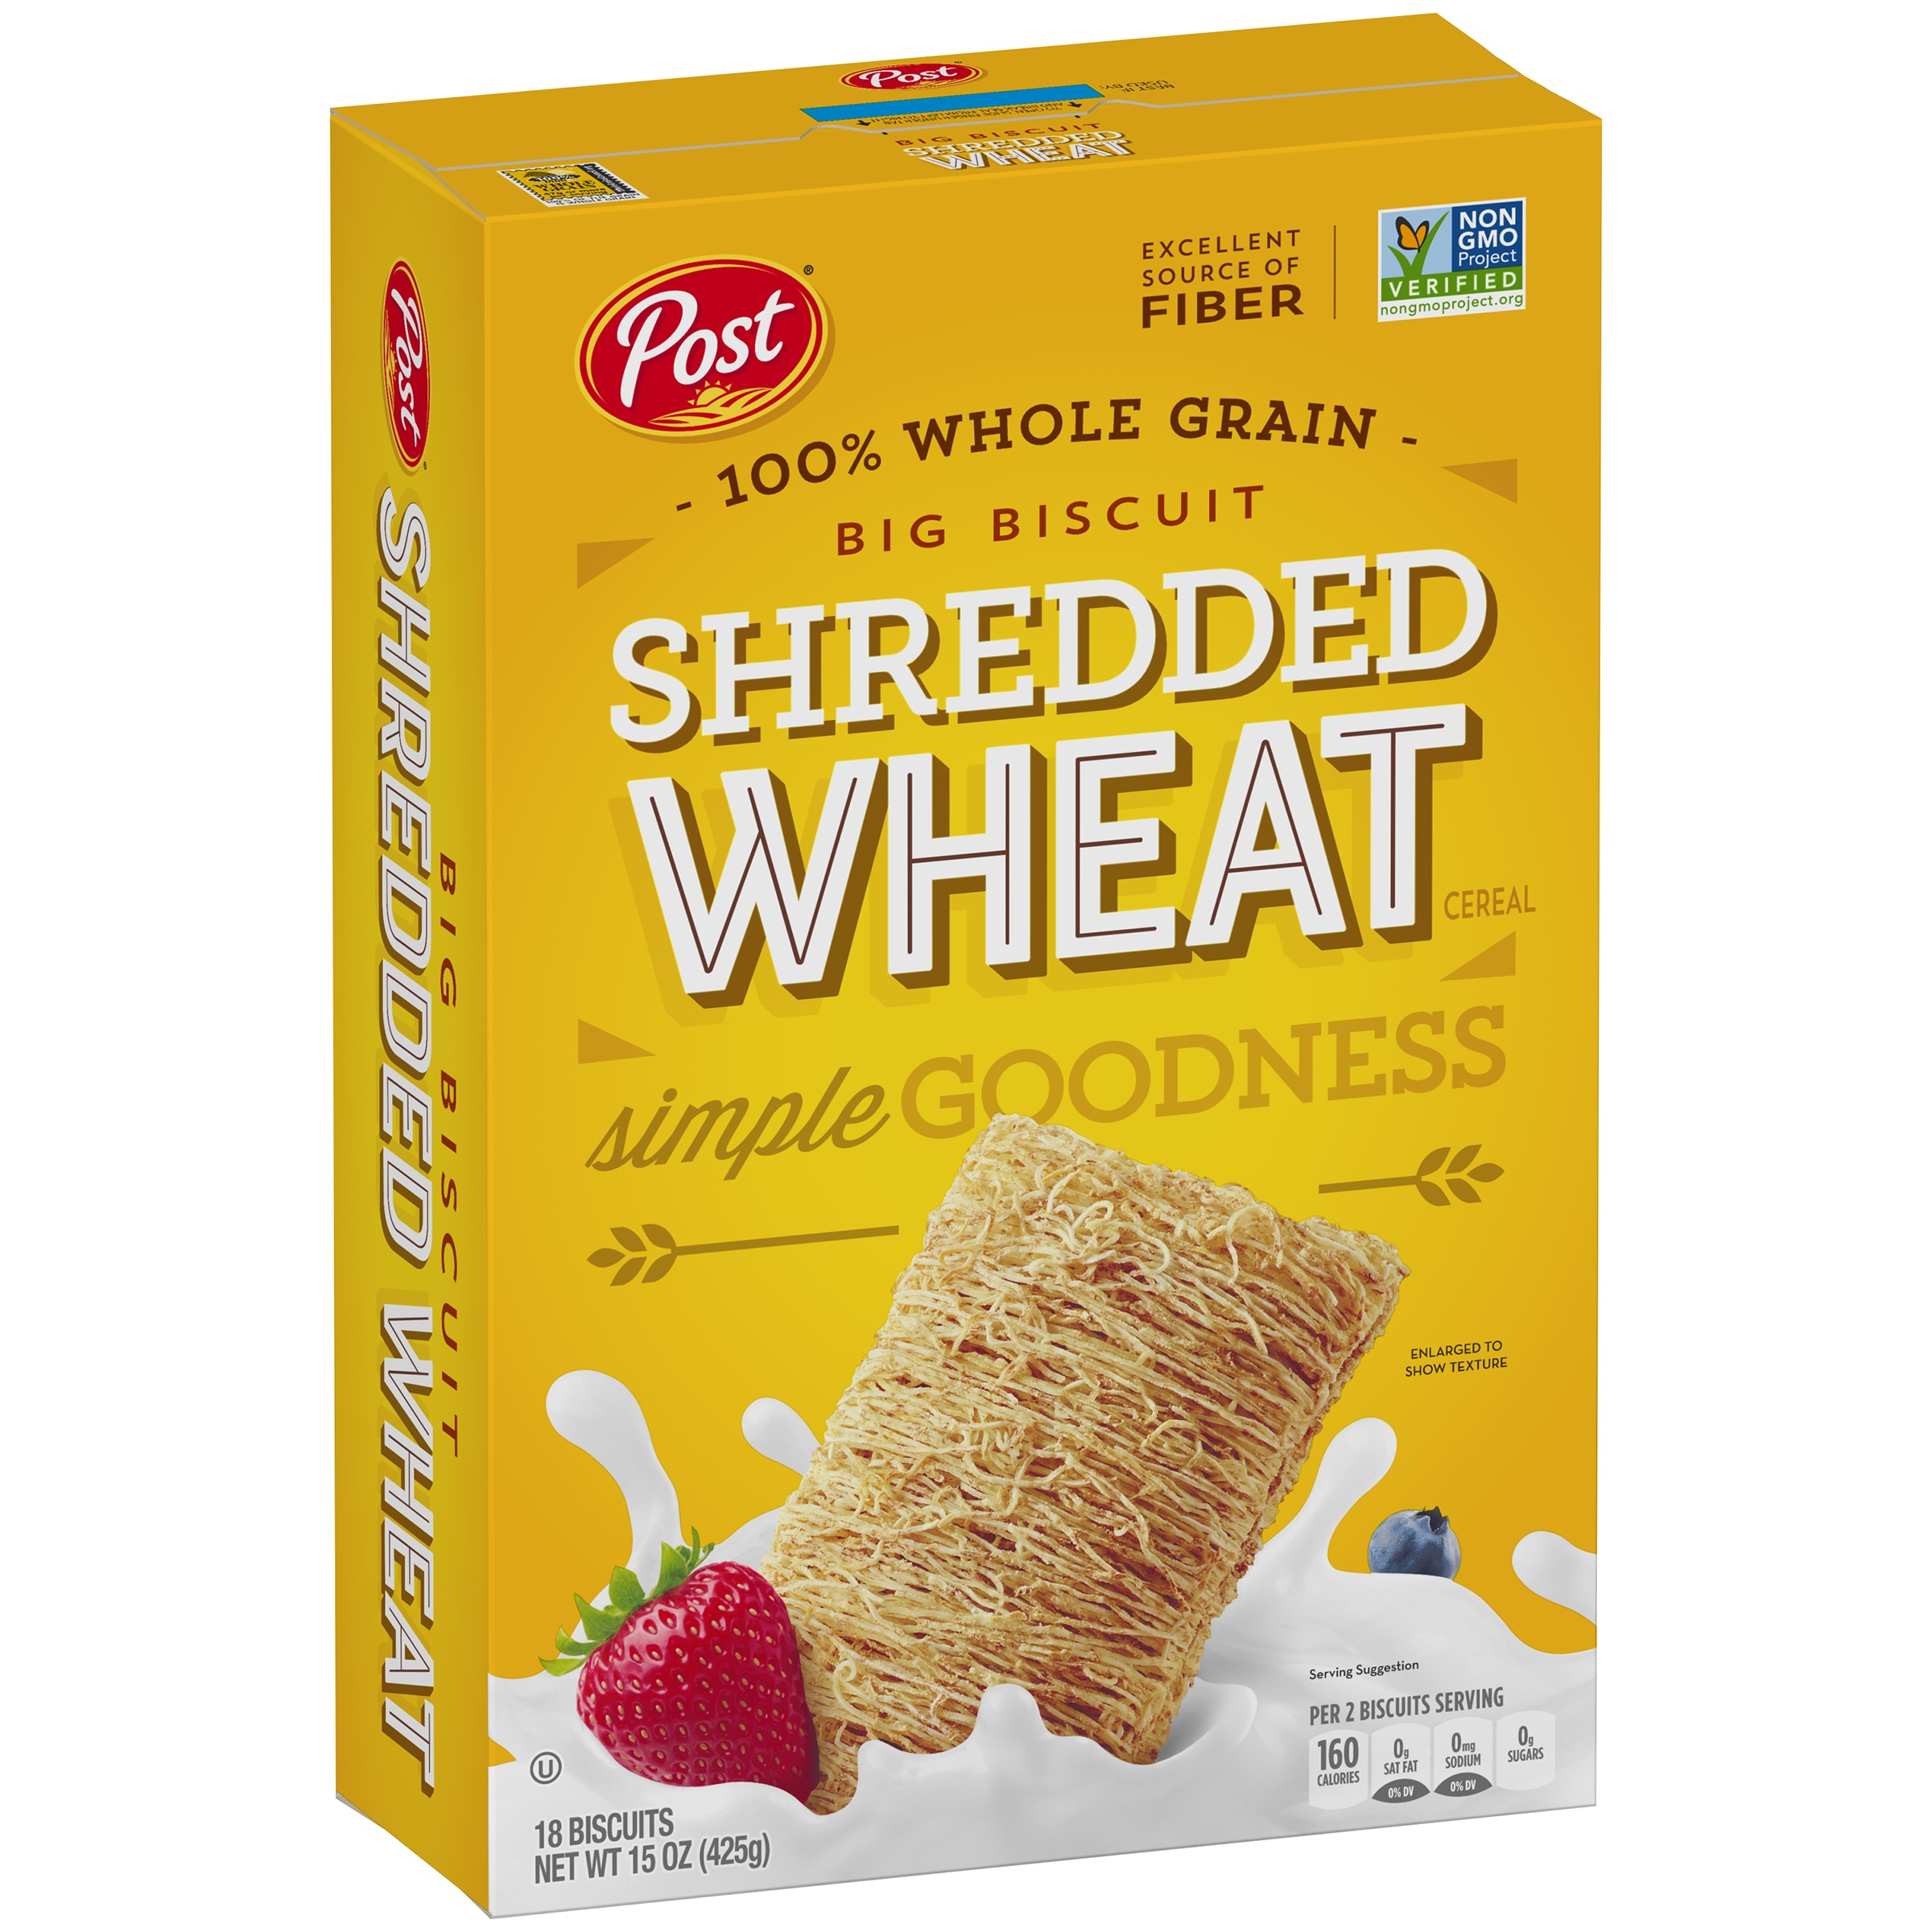 Post Whole Grain Shredded Wheat Big Biscuit Cereal Box, 15 oz